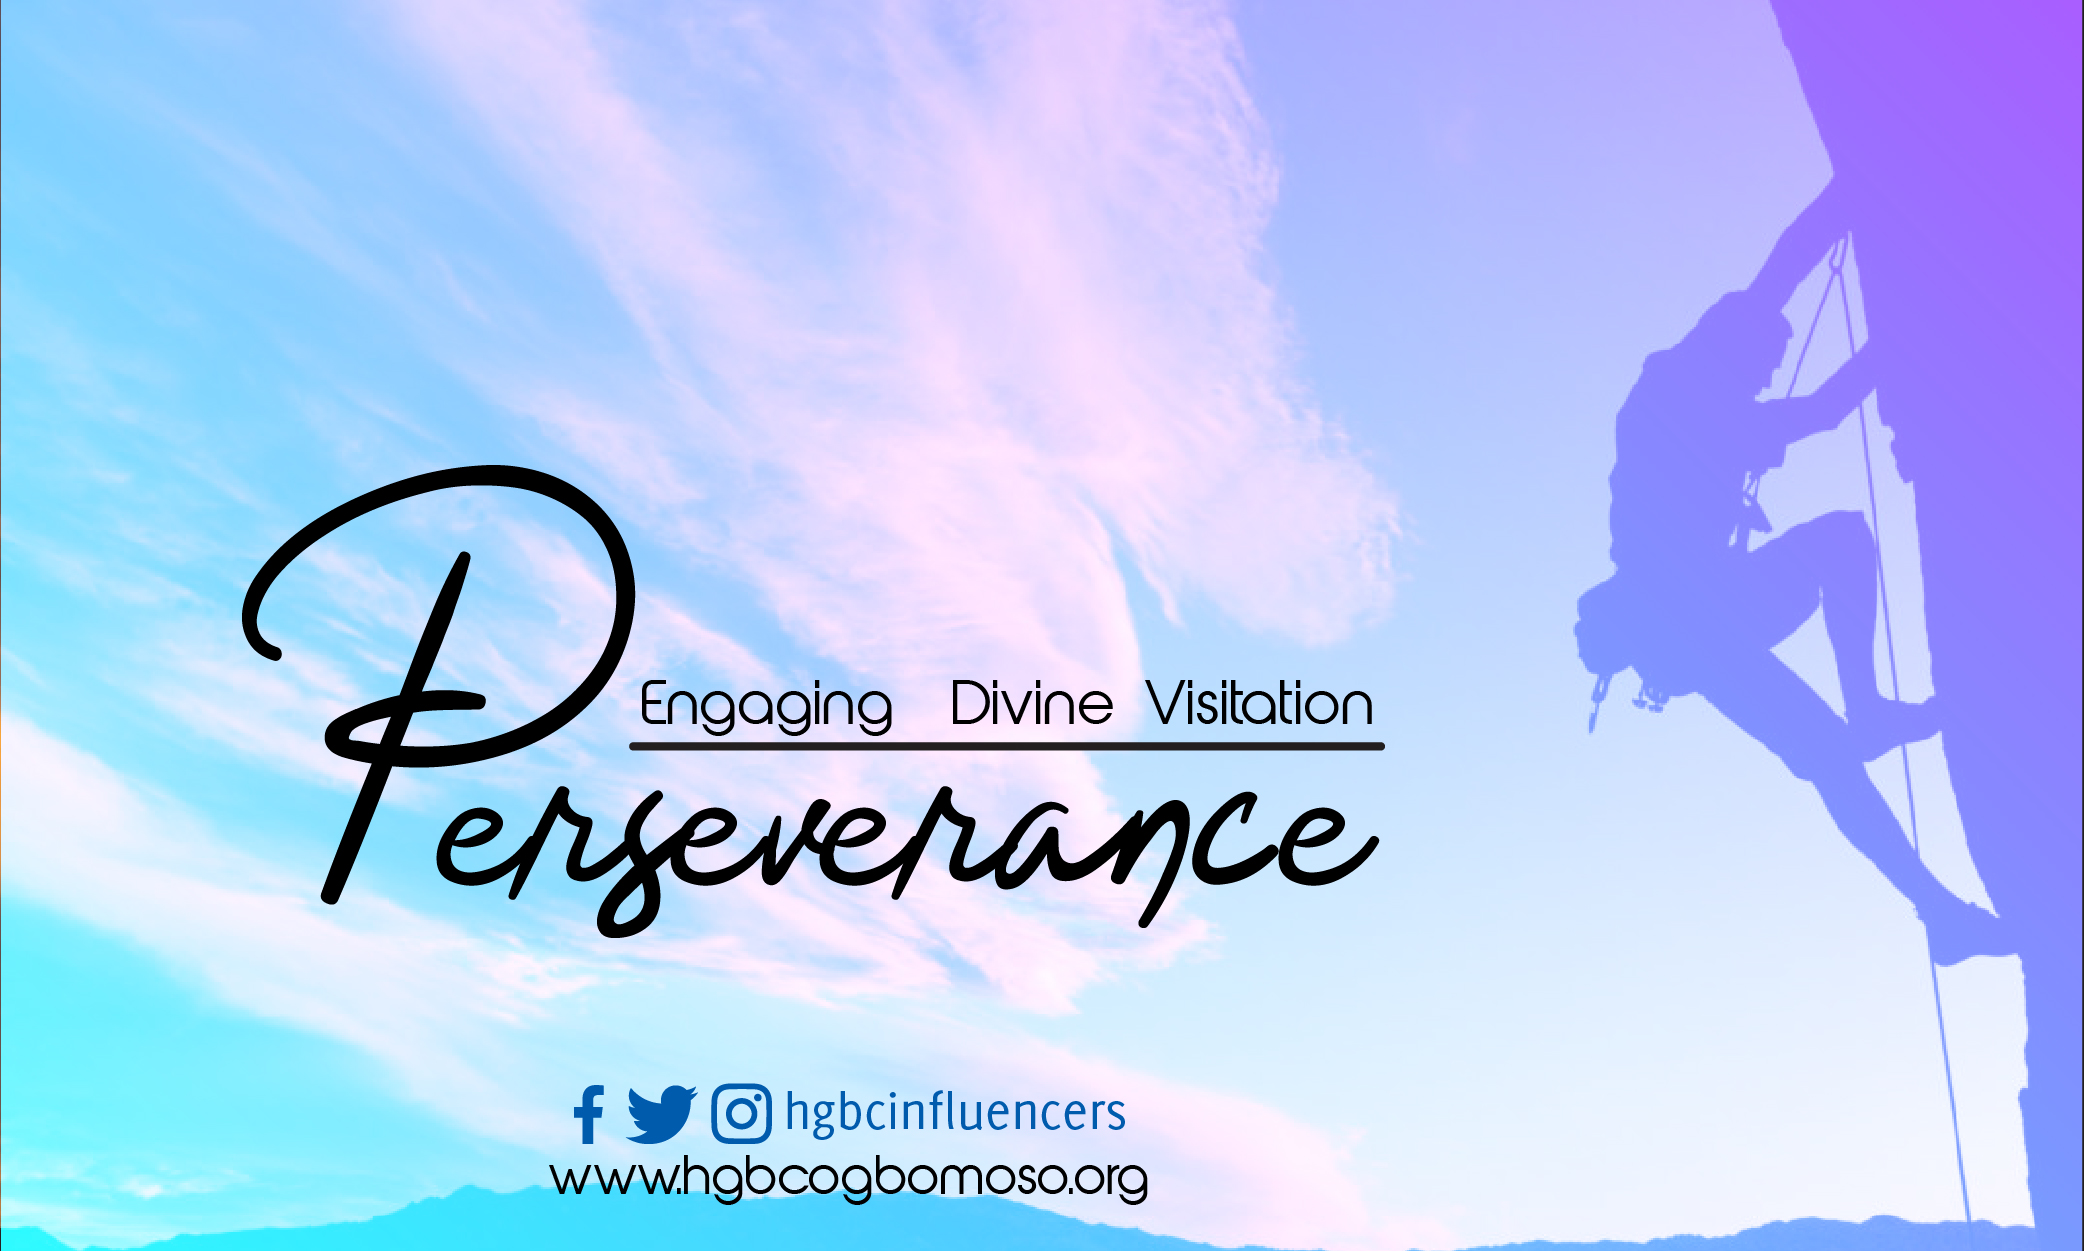 Engaging divine visitation through perseverance